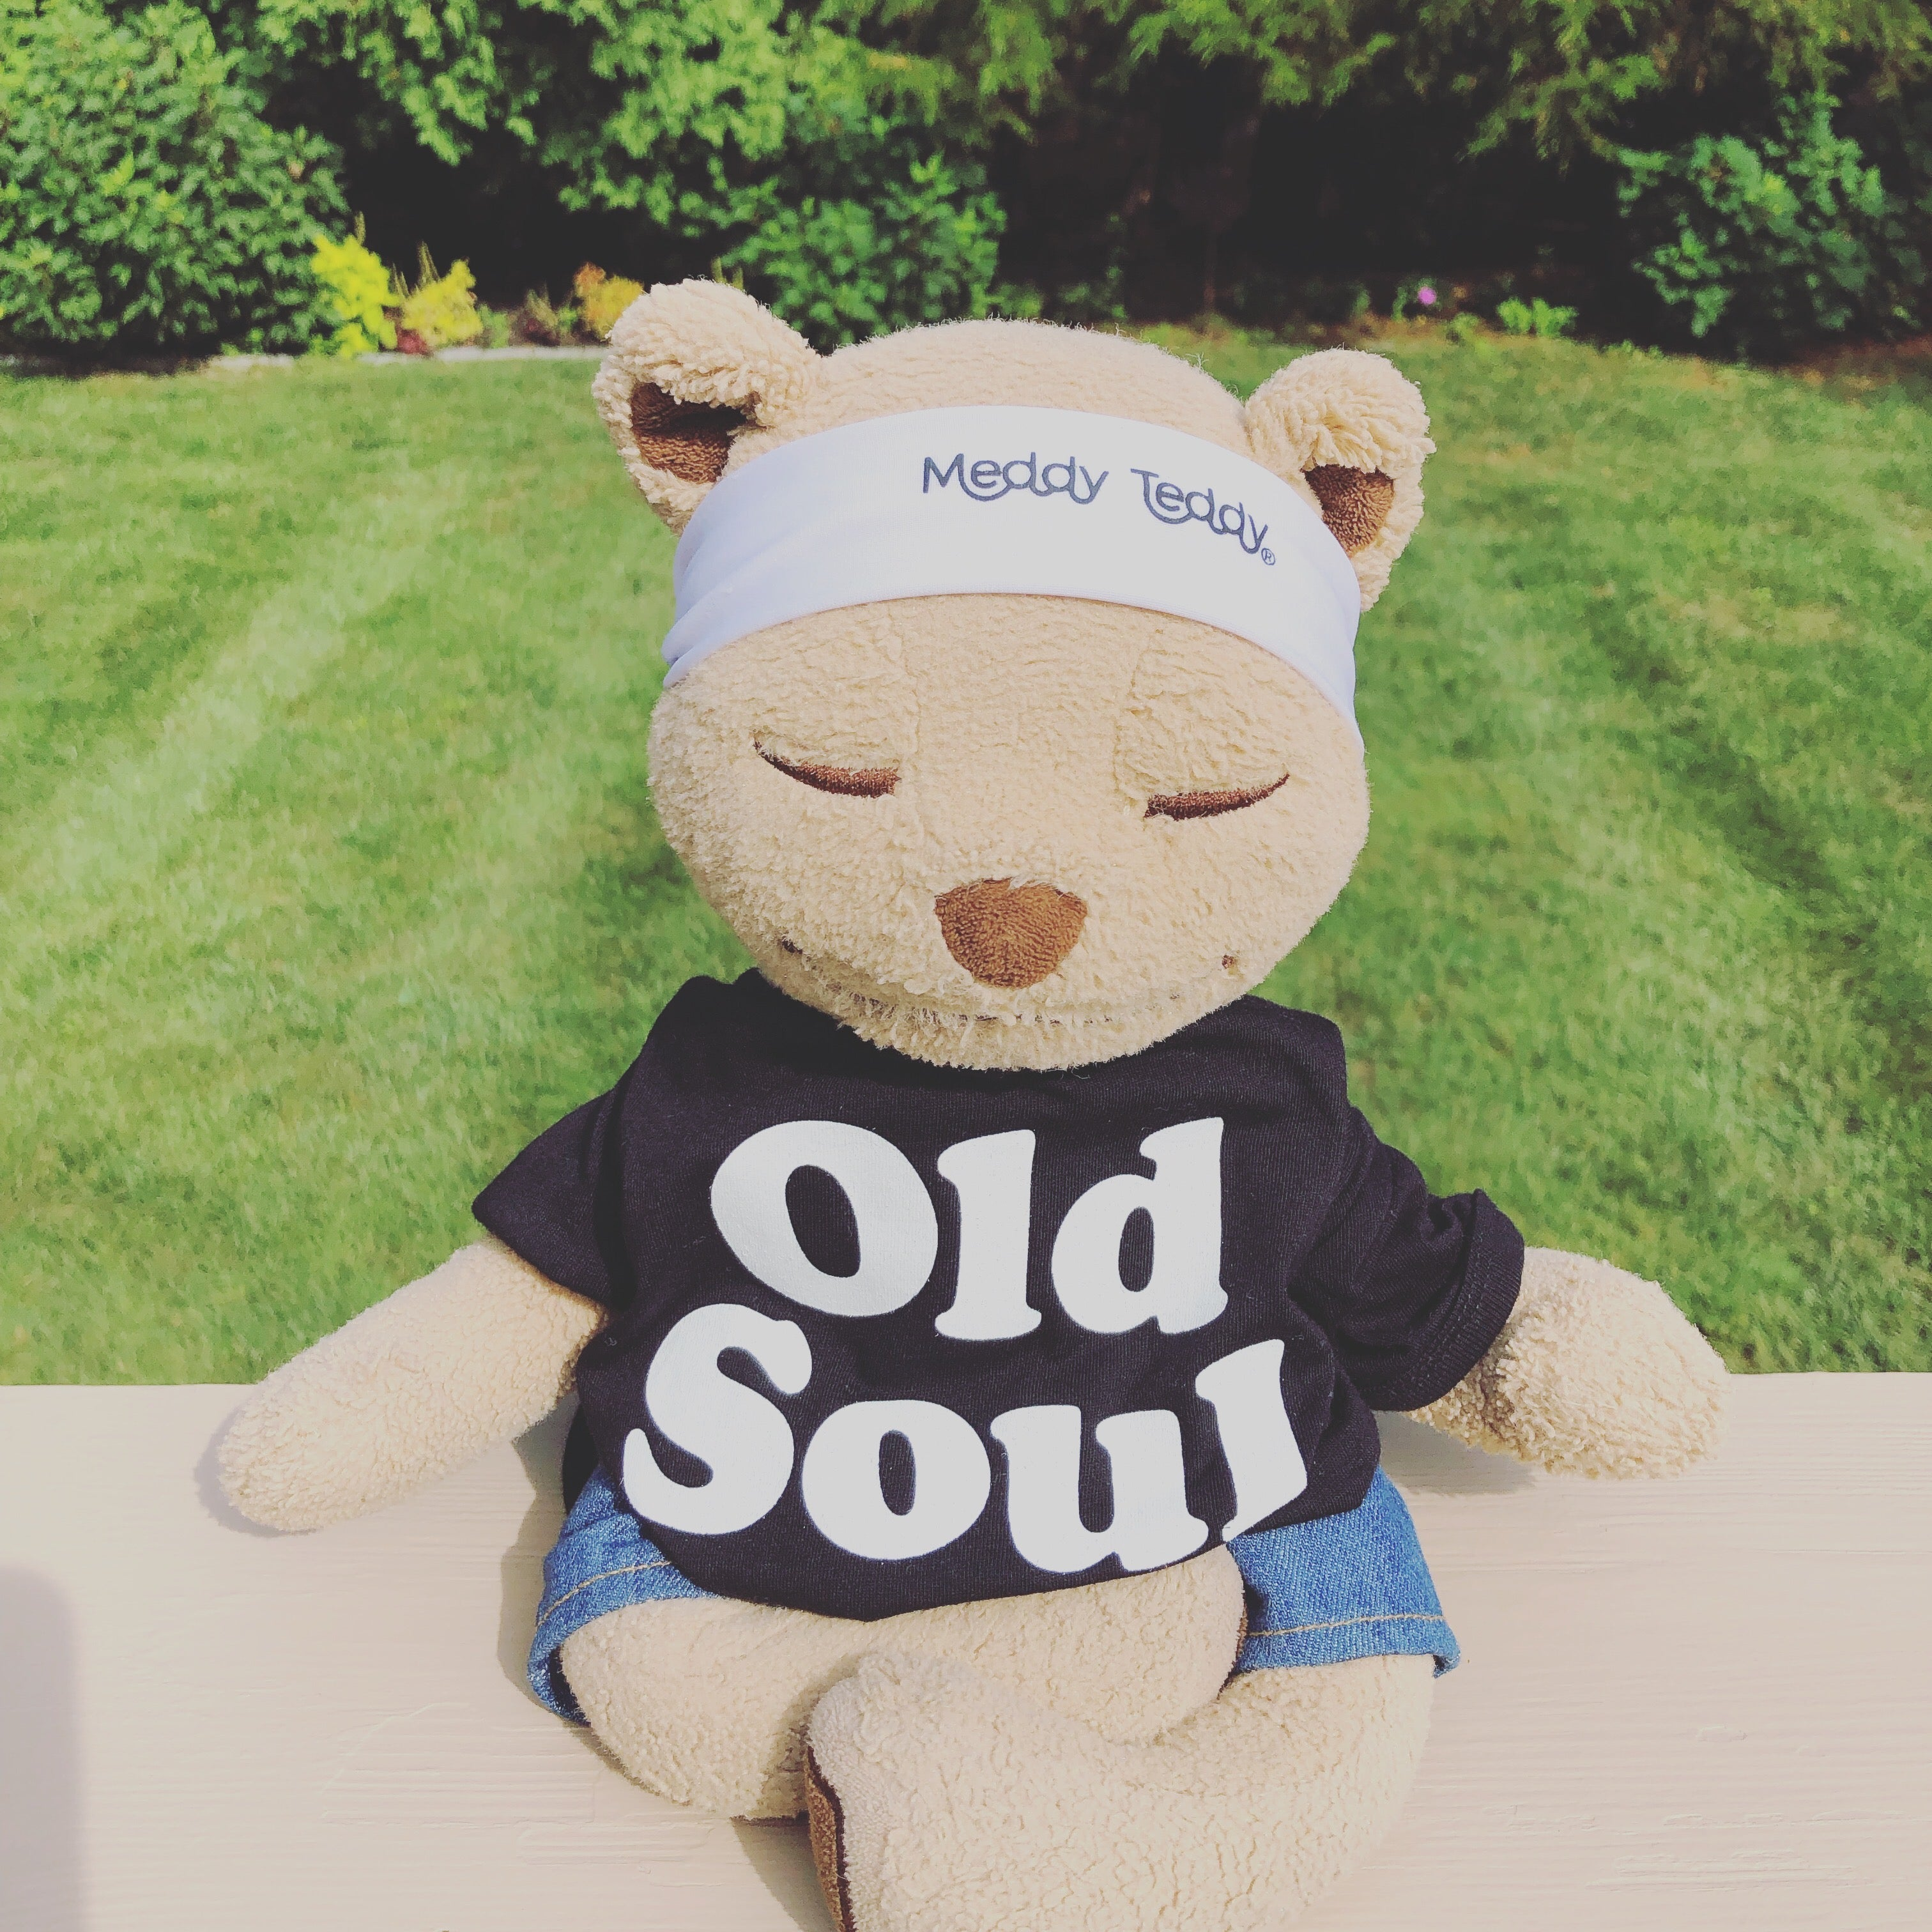 old soul Meddy the Teddy bear breath